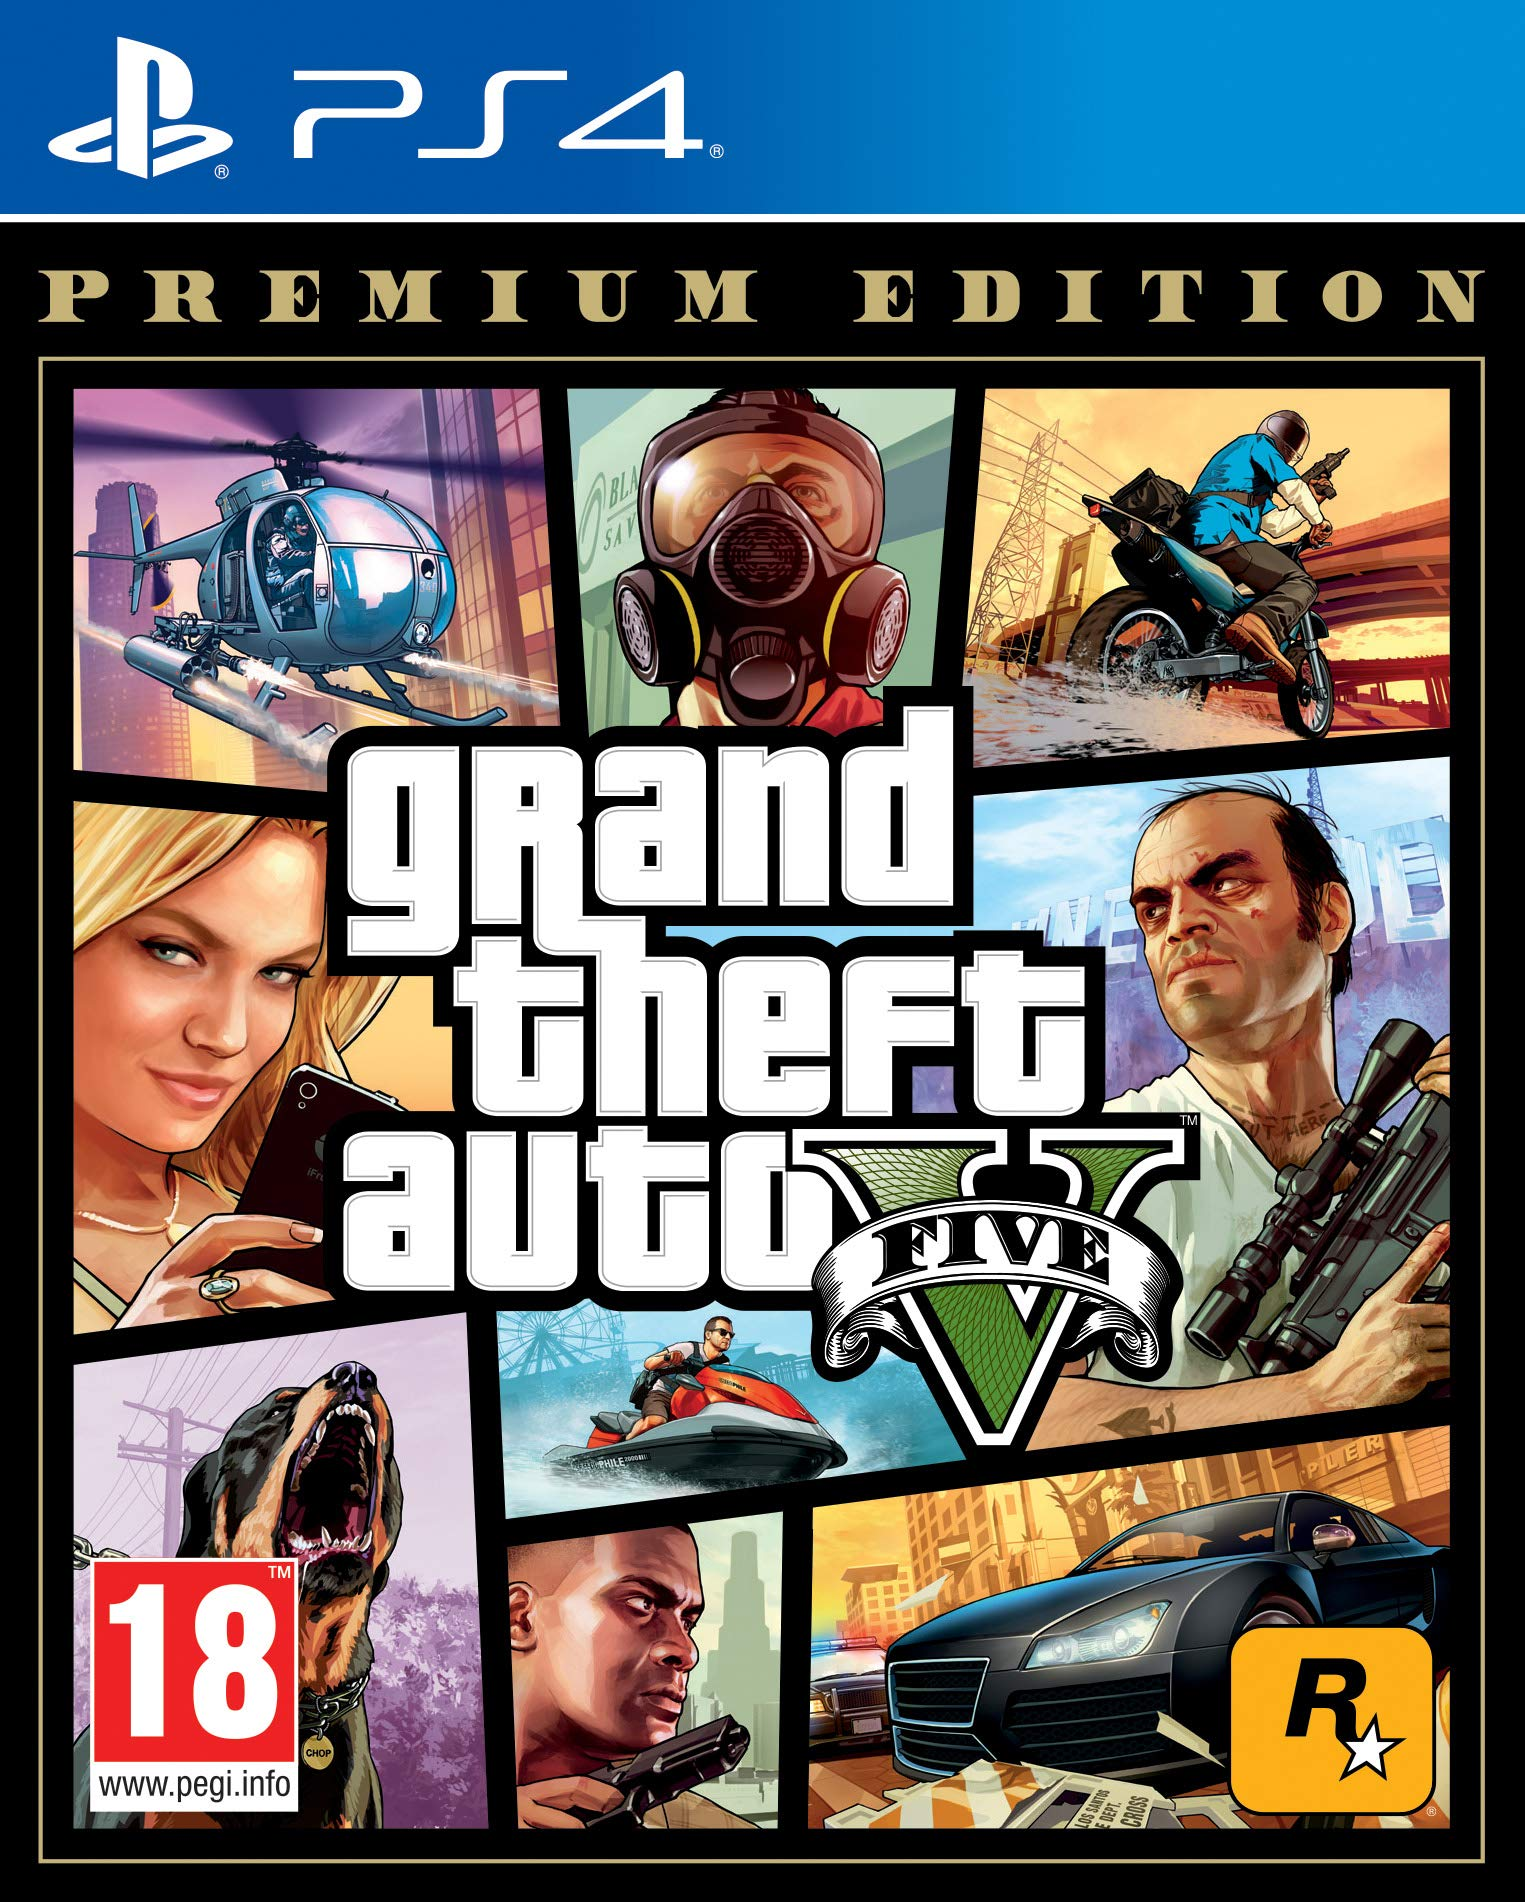 Grand Theft Auto V - Premium Edition: Sony: Amazon.es: Videojuegos